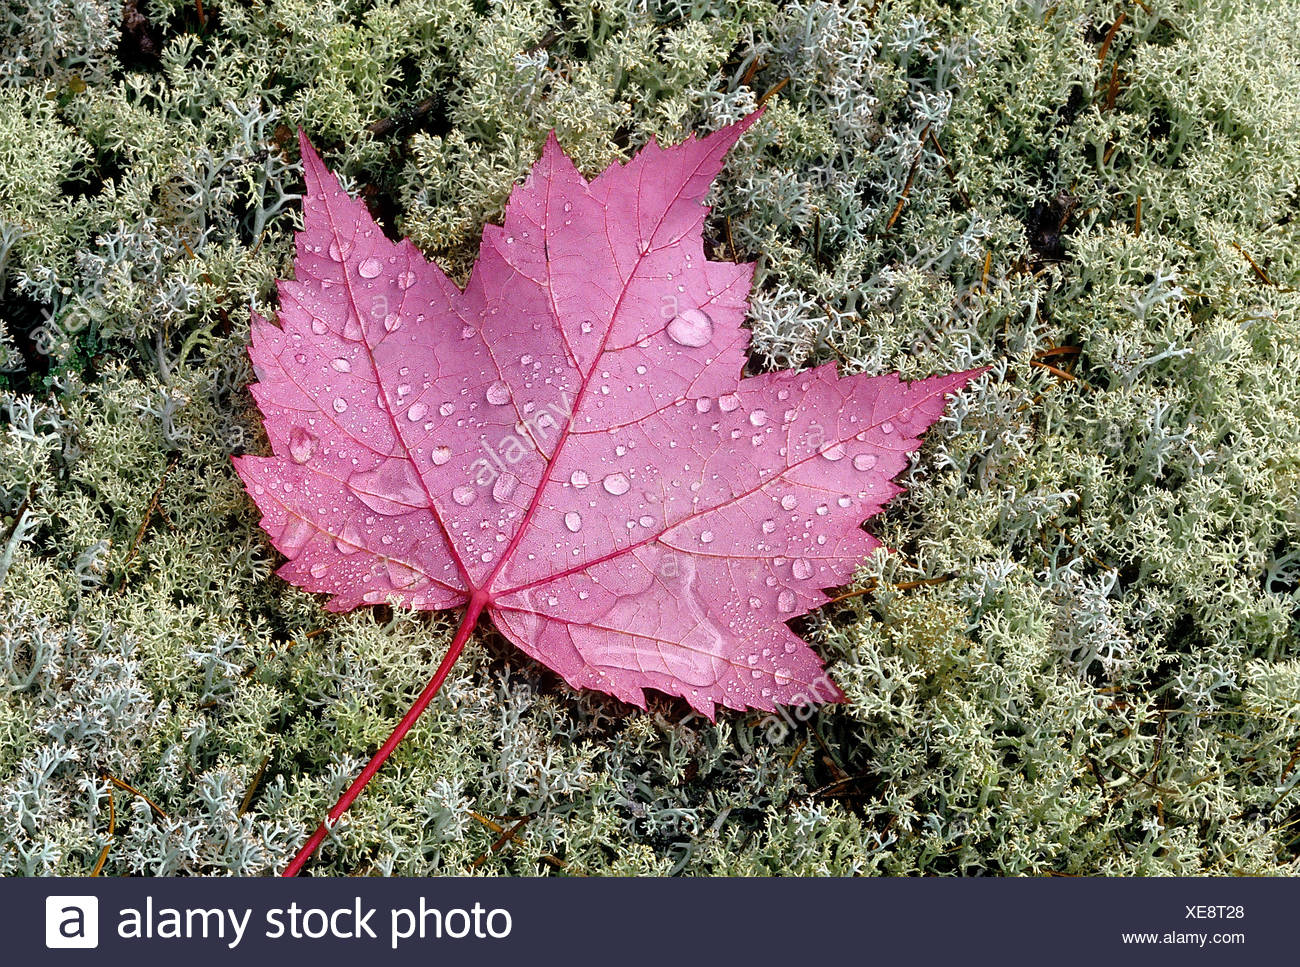 Rain drops on red maple leaves (Acer rubrum) on lichens Near Sioux Narrows Ontario Canada - Stock Image